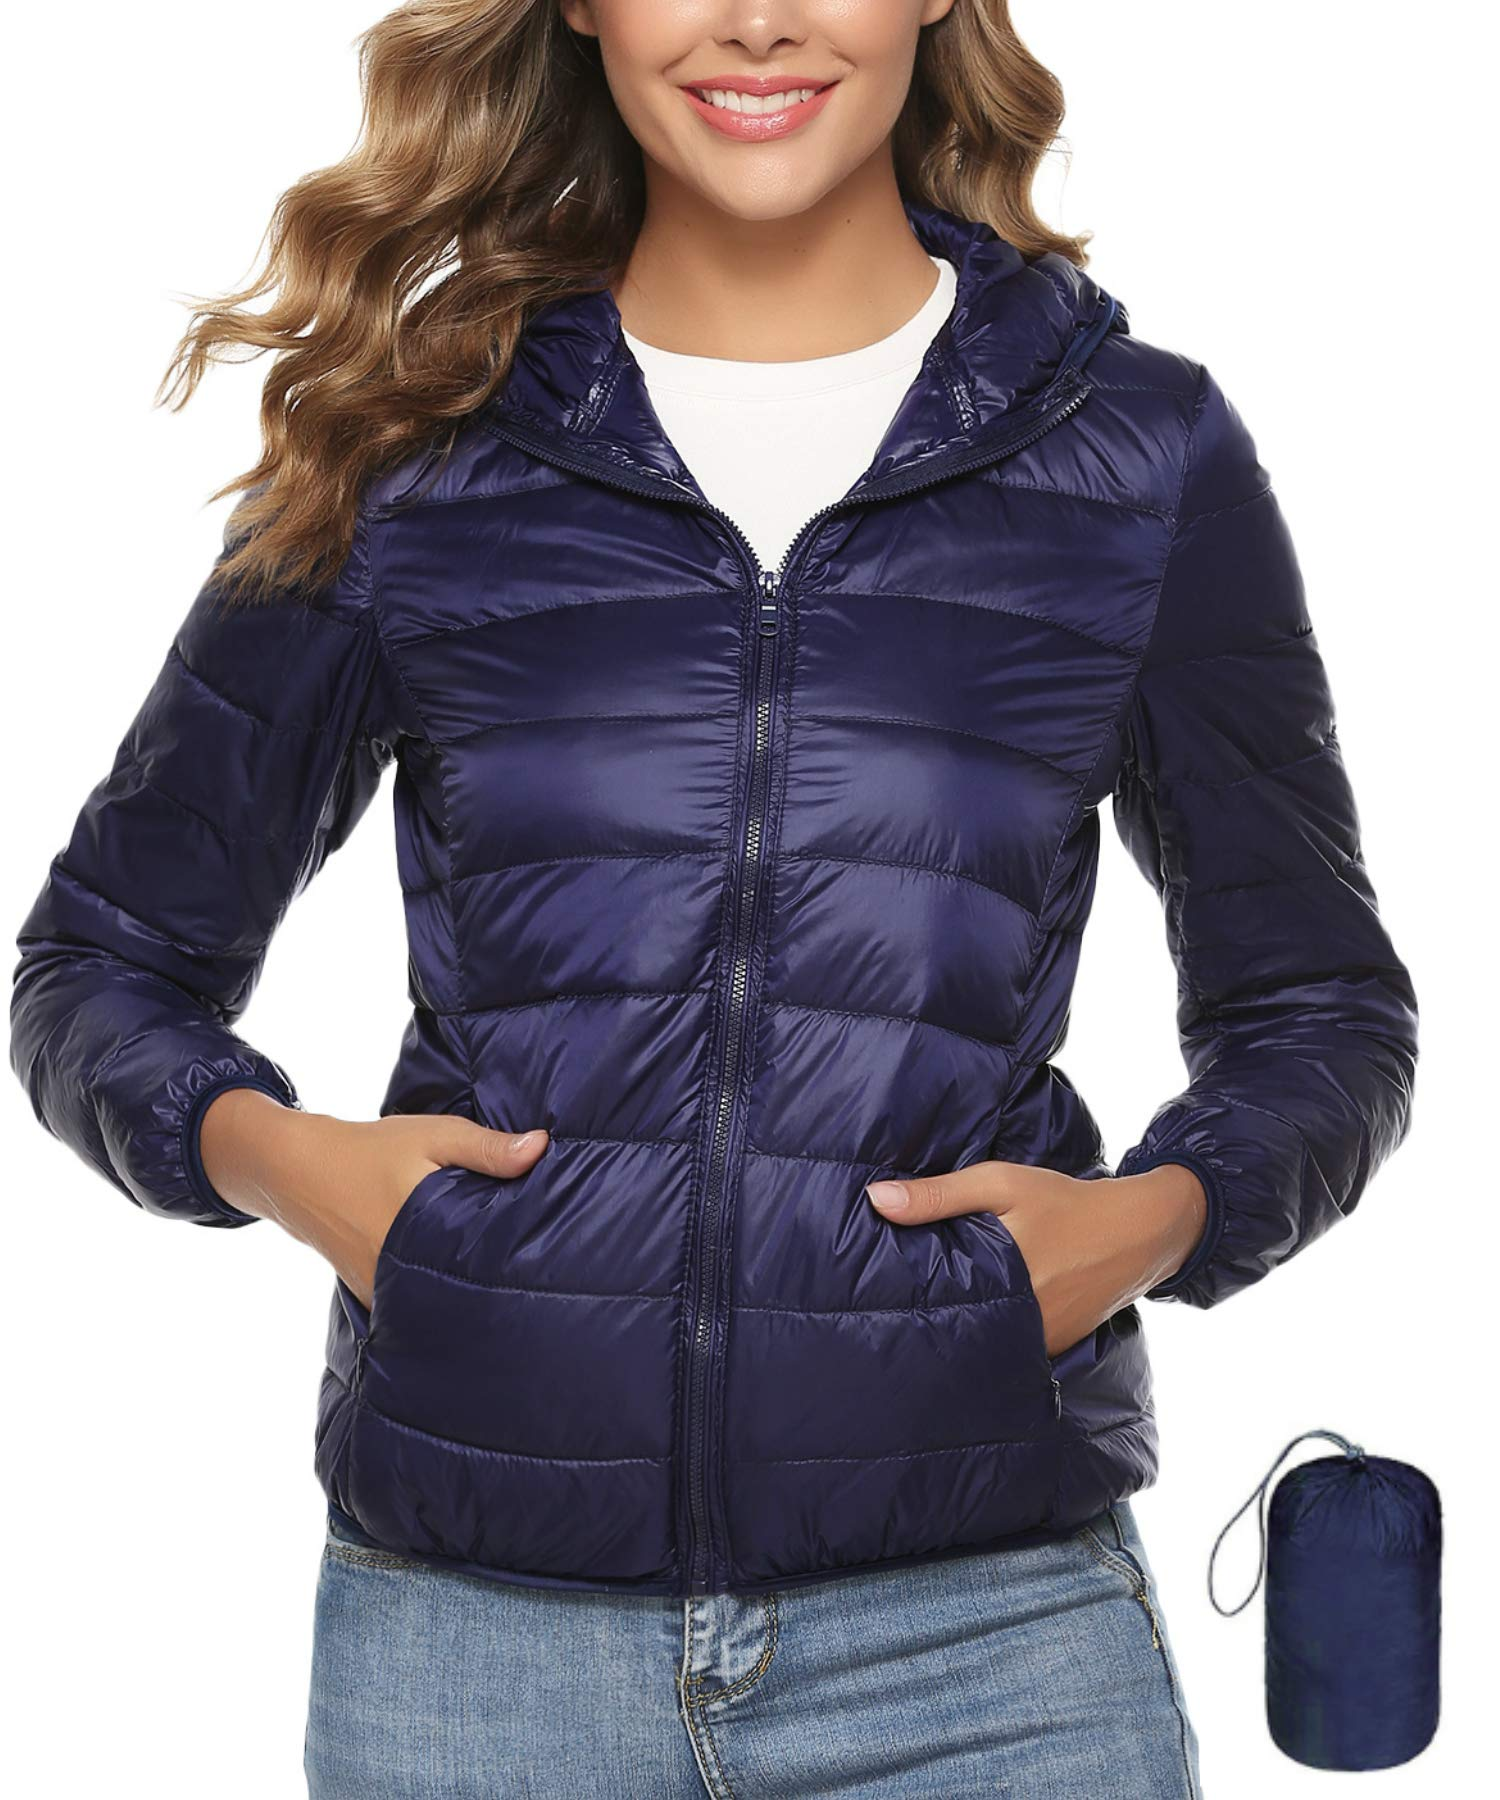 Hawiton Women's Lightweight Insulated Packable Jacket Hooded Down Jackets Parkas